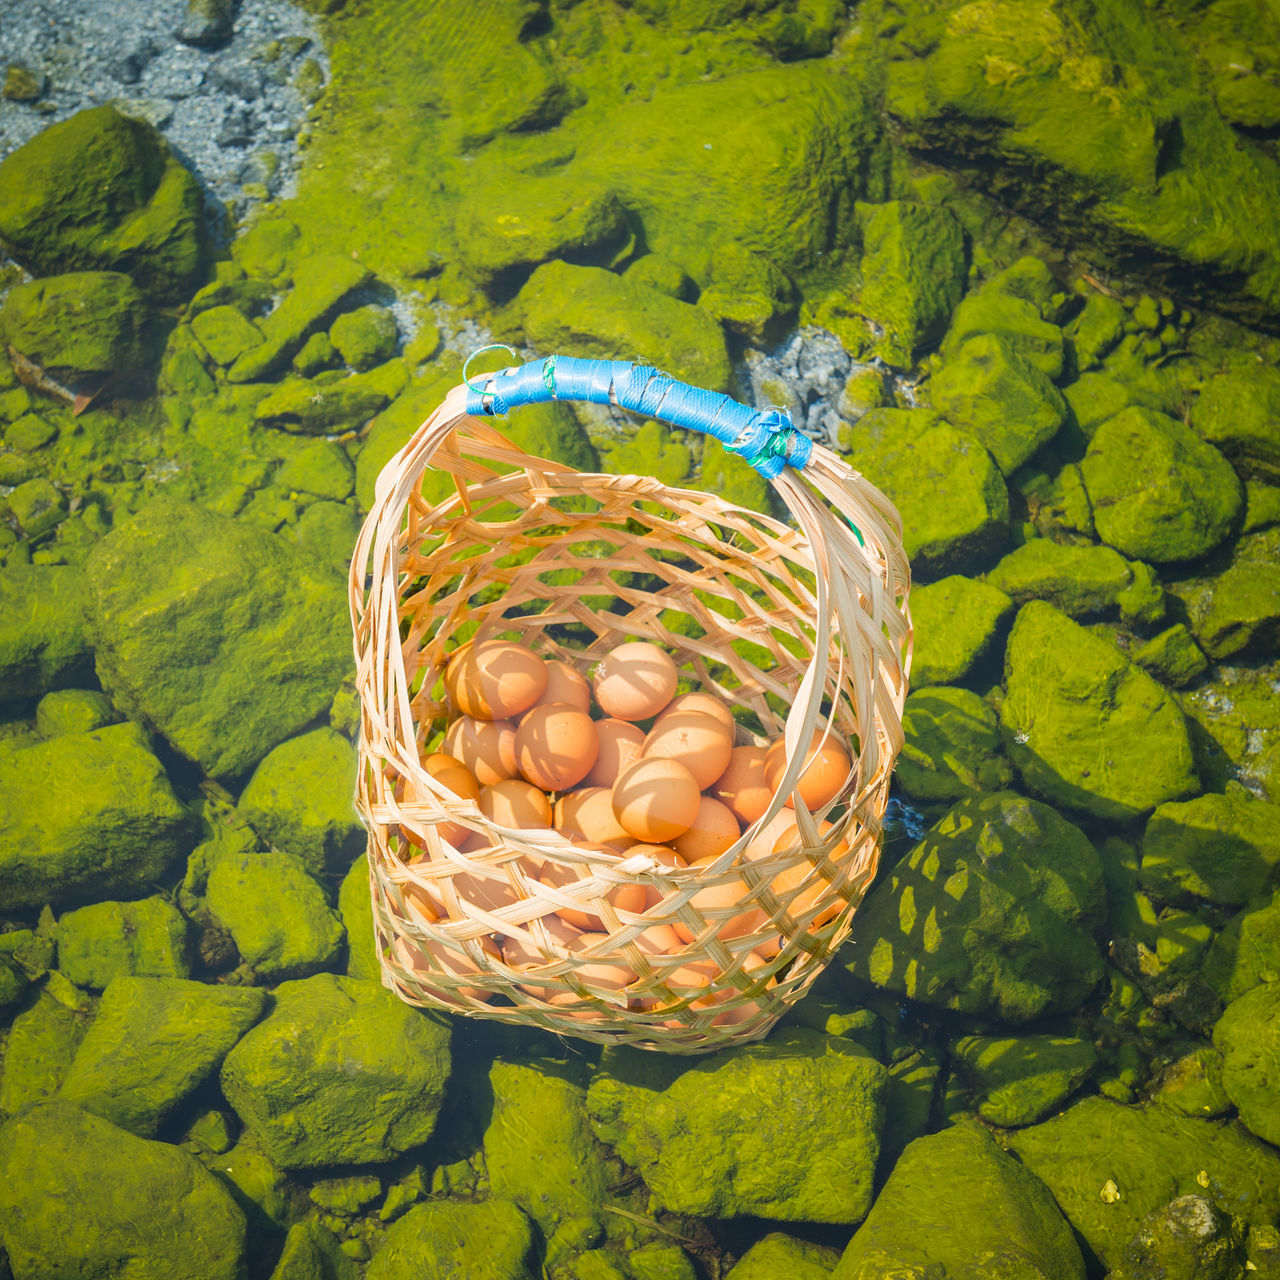 Boil egg in hot springs Basket Close-up Day Egg Food Freshness Green Ground Group Of Objects Healthy Eating Healthy Food Hot Spring Natural Nature No People Object Onsen Onsen Egg Outdoors Transparent Travel Water